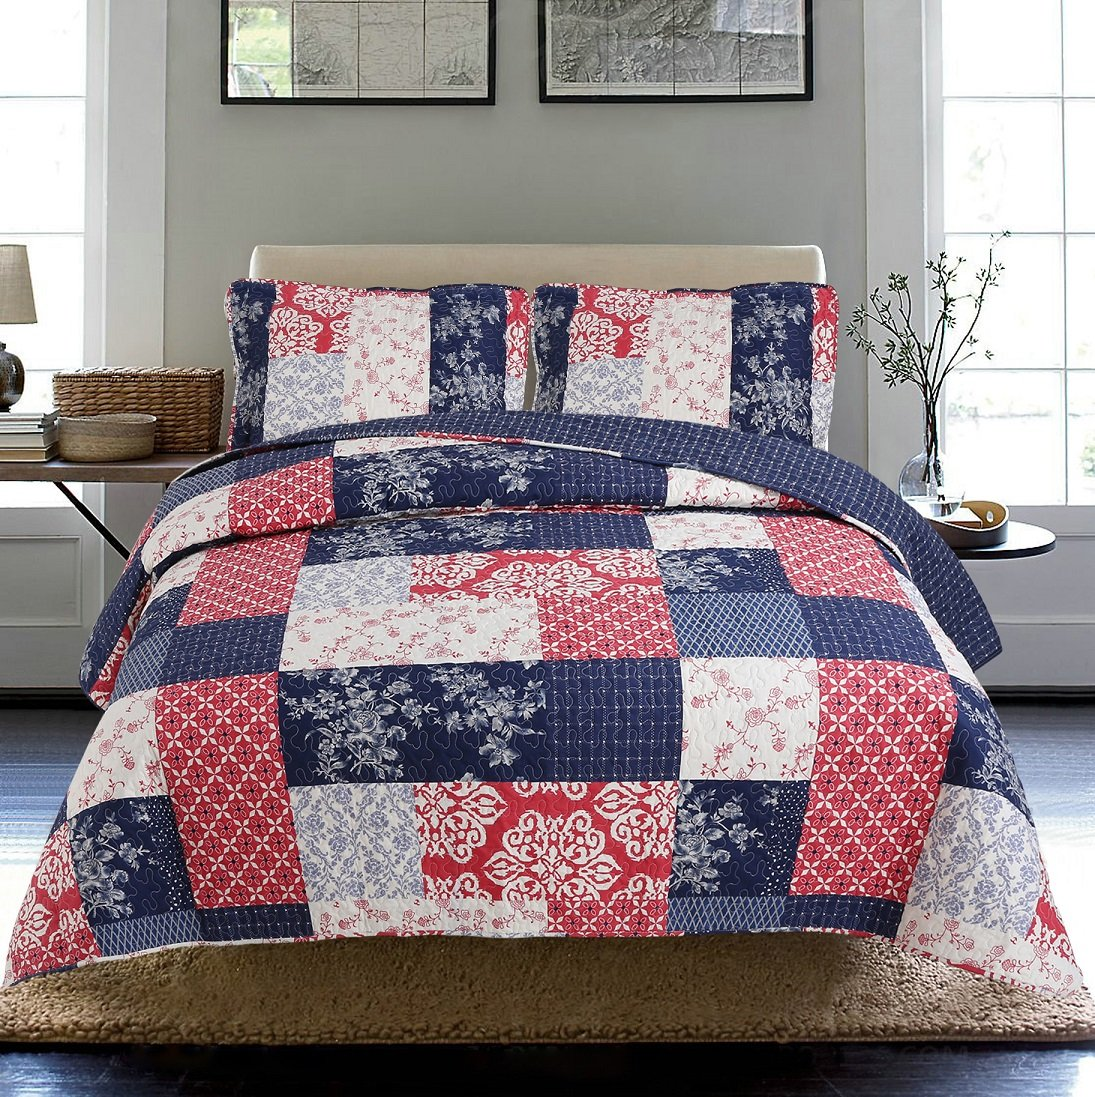 All American Collection New 3pc Printed Modern Floral Patchwork Bedspread Coverlet QUEEN, NAVY/ RED